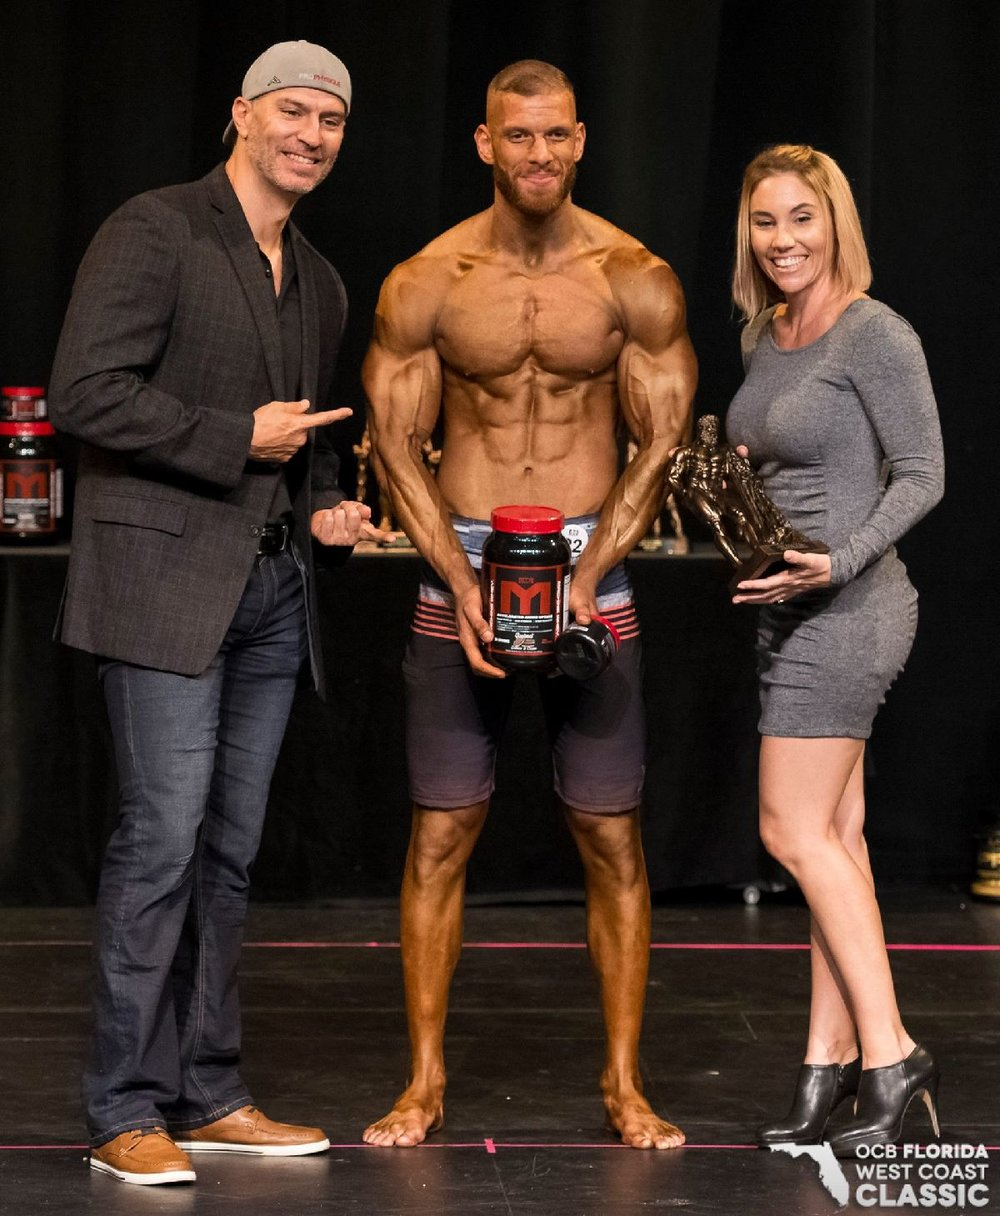 Muscular profit margin ; men's physique was designed as a reaction to help mismanaged bodybuilding competitions regain revenue margins.